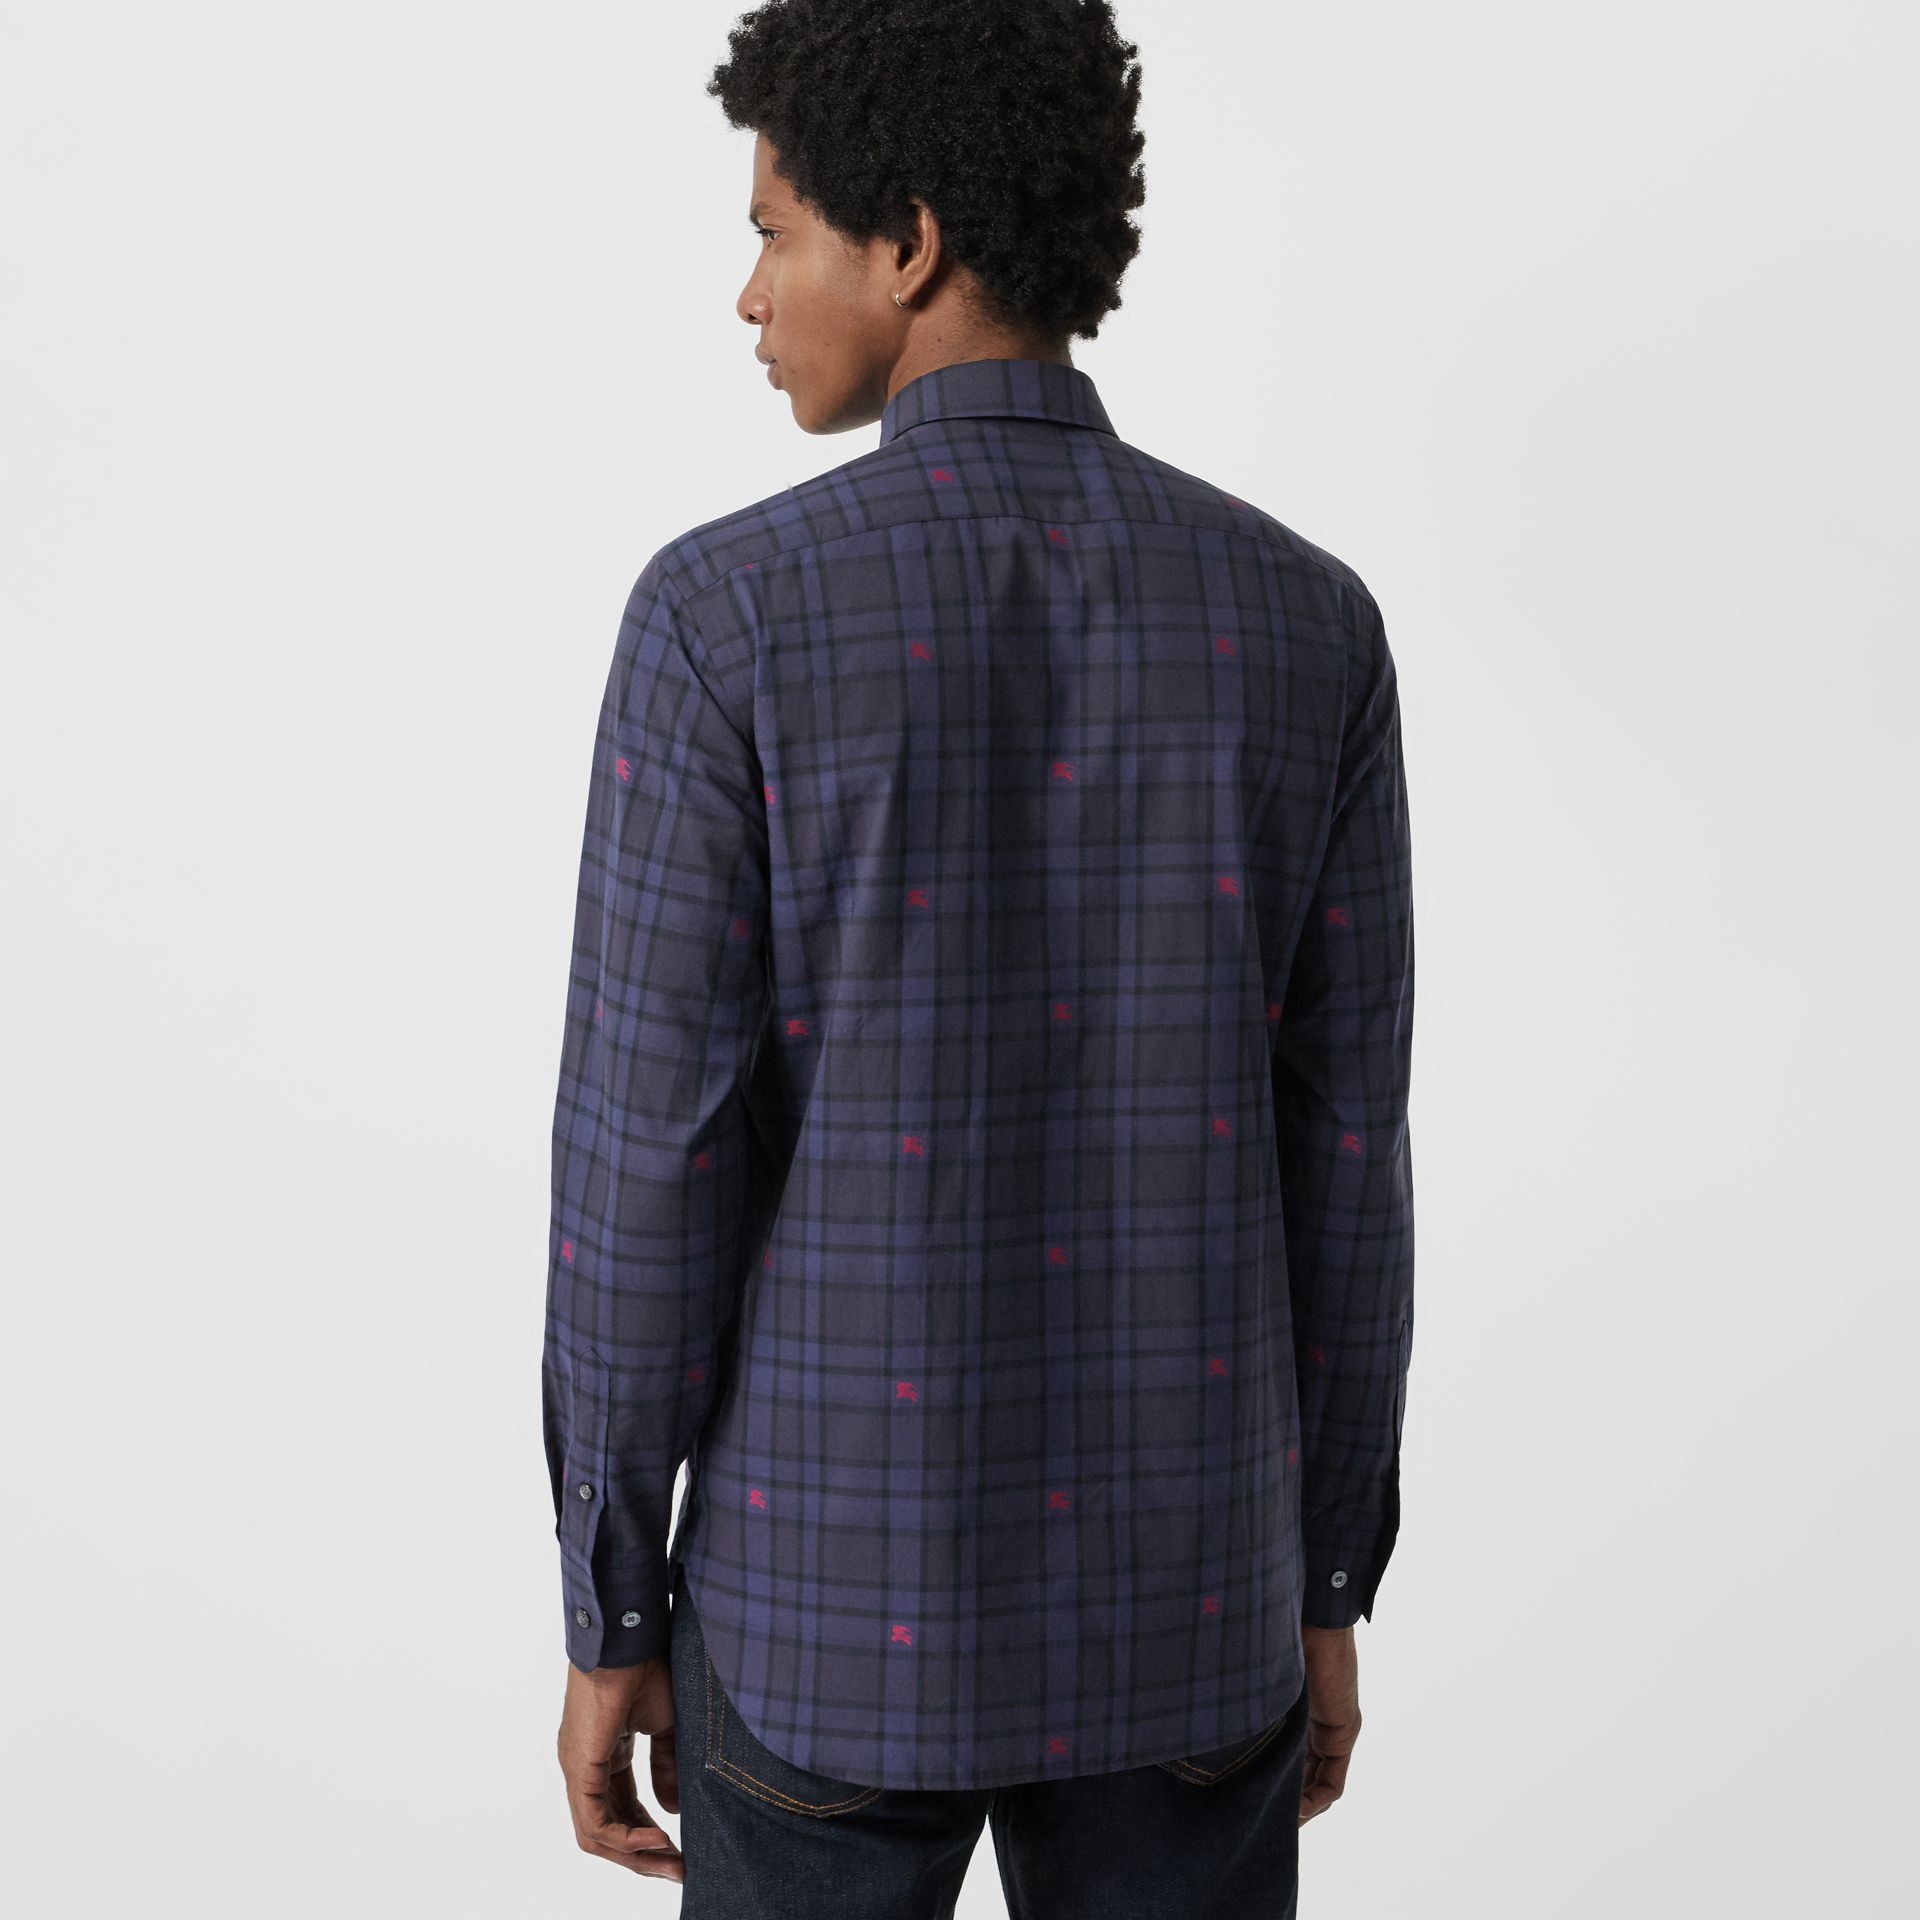 Equestrian Knight Check Cotton Shirt in Dark Indigo - Men | Burberry Canada - gallery image 2